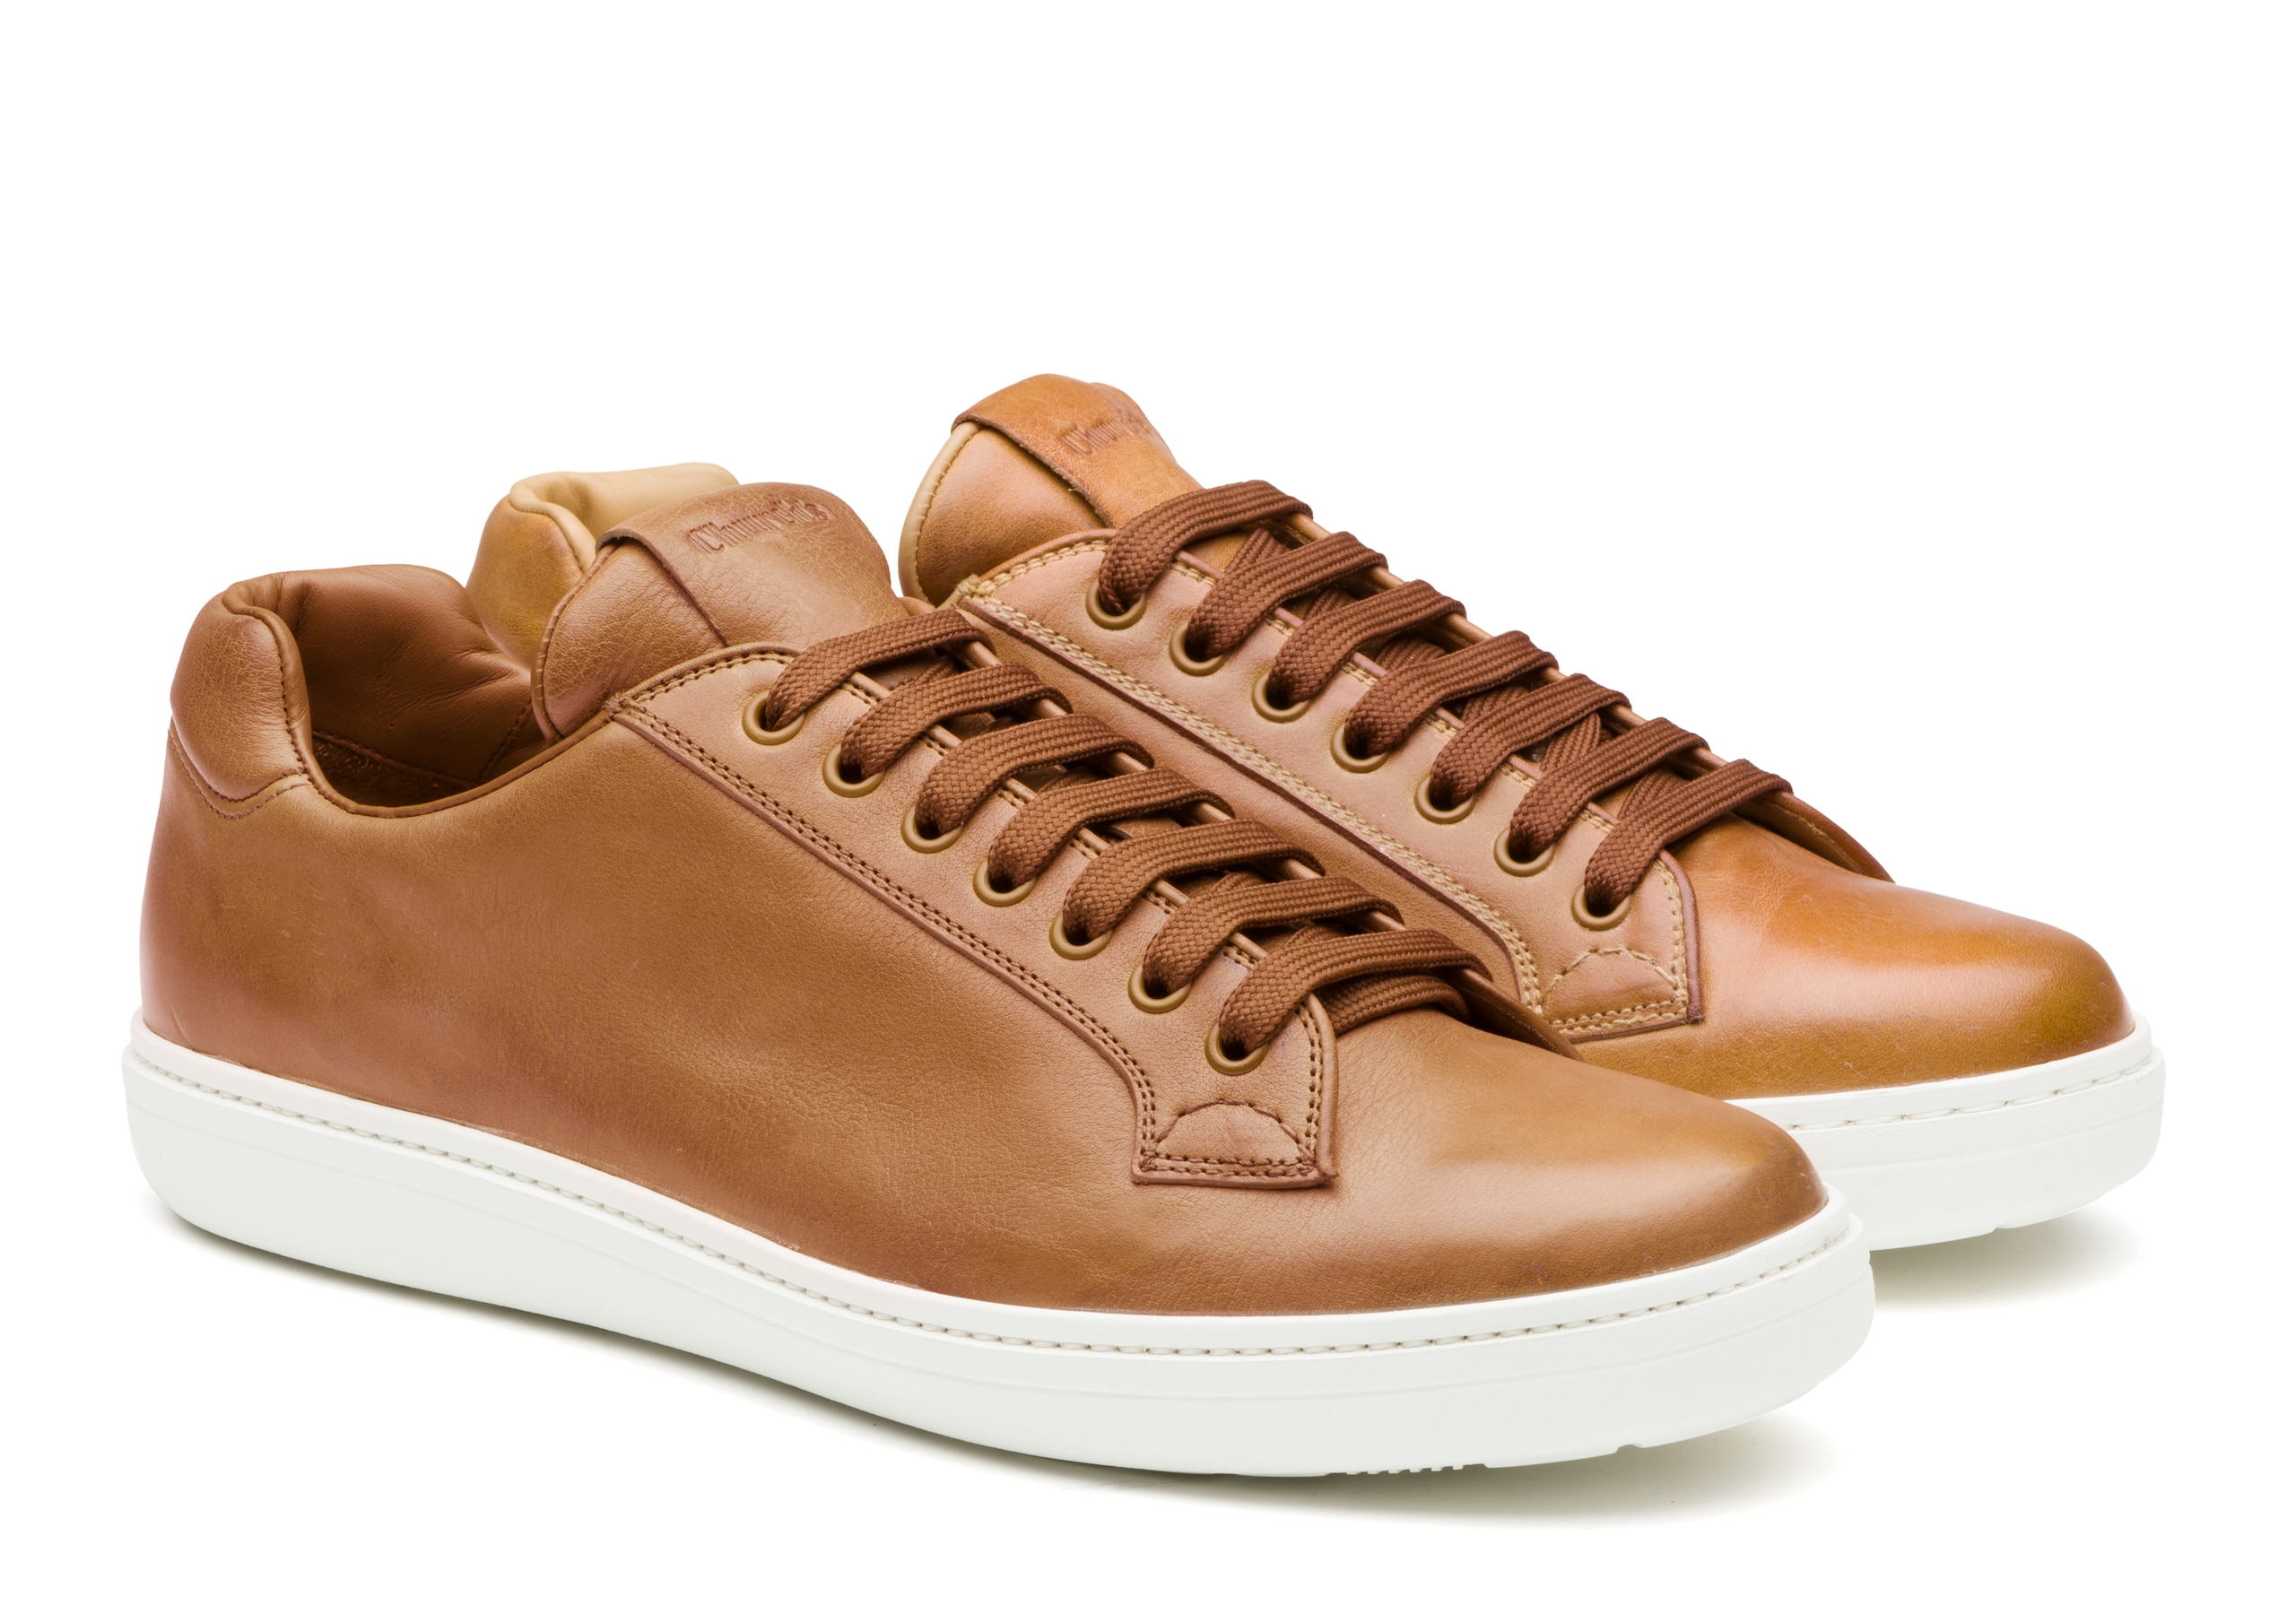 Boland plus Church's Vintage Calf Leather Classic Sneaker Neutral